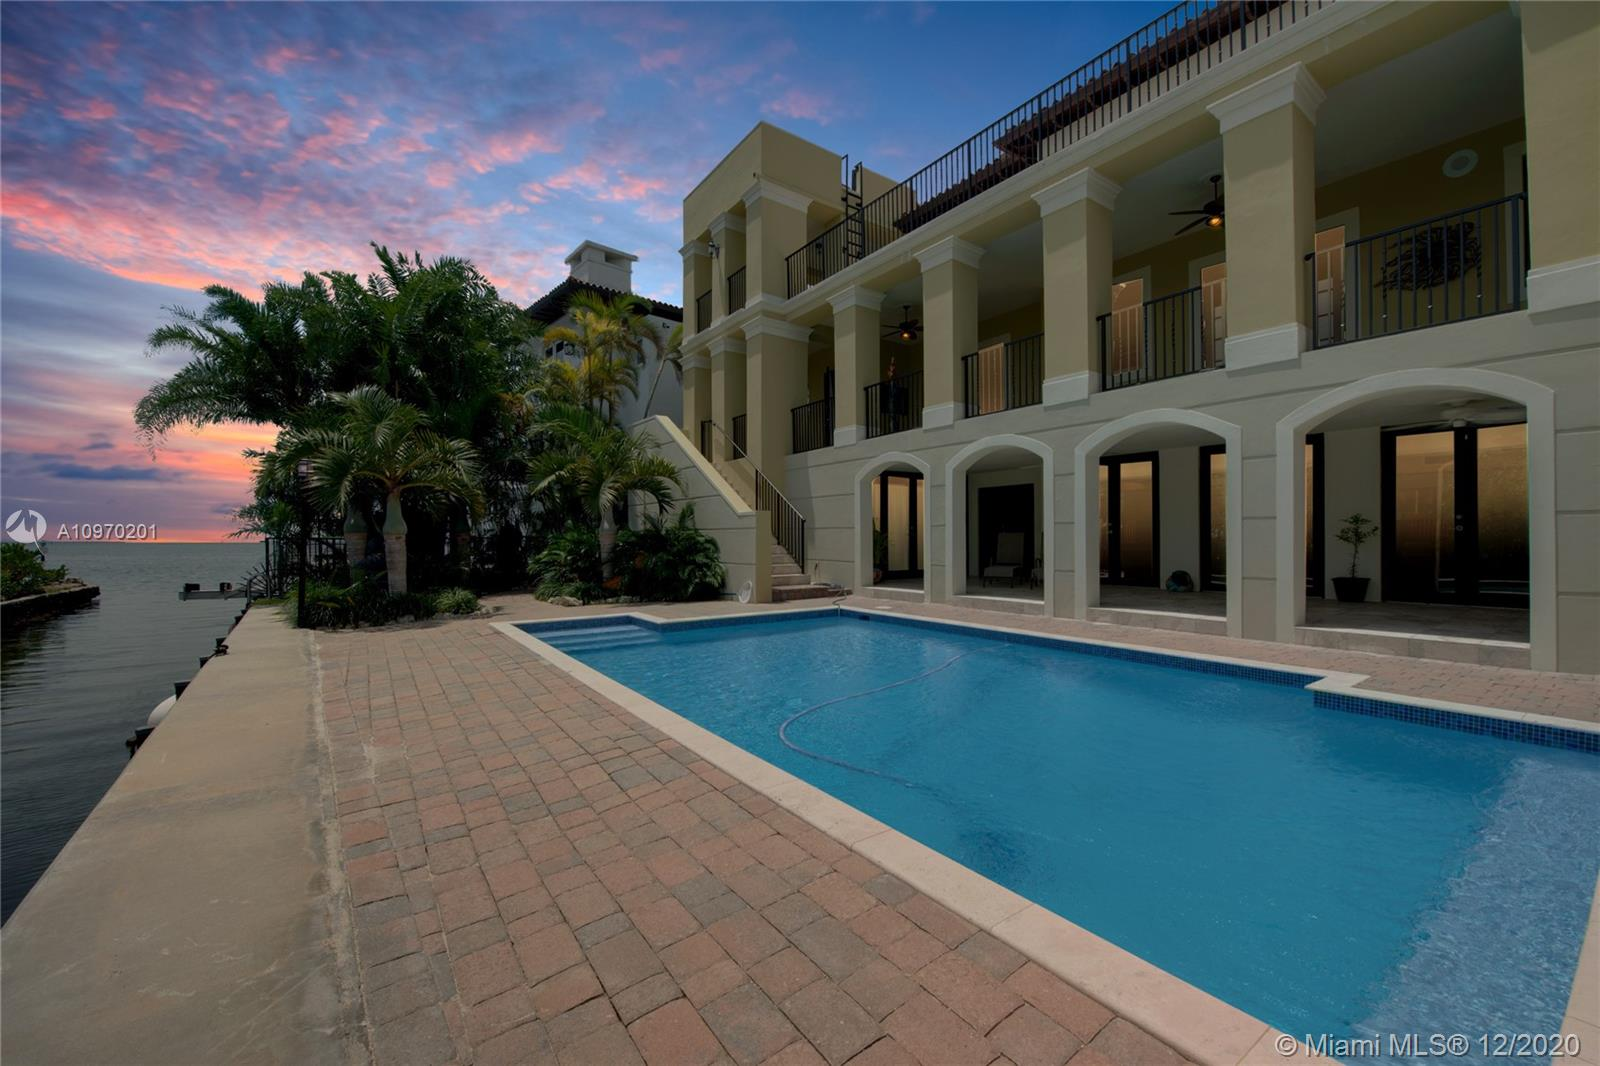 3341 Poinciana Ave Luxury Real Estate